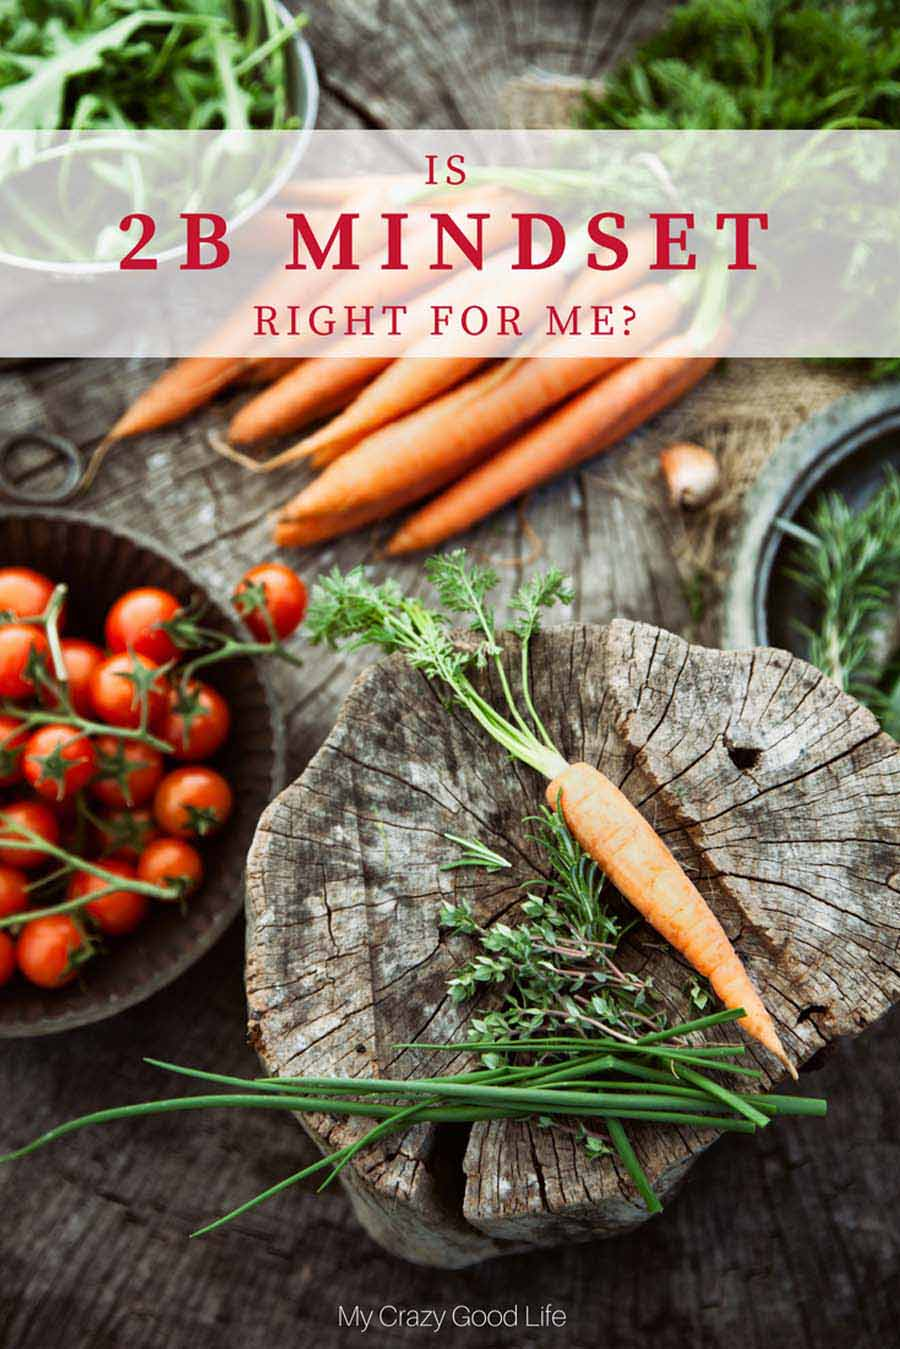 2B Mindset is a Beachbody nutrition program. Here is a 2B Mindset review, links to 2B Mindset recipes, and some FAQ about this veggies most program. 2B Mindset Diet information | 2B Mindset Results #2BMindset #weightlossrecipes #21DayFix #vegetables #recipes #healthyrecipes #beachbodyrecipes #veggiesmost #veggies #waterfirst #2bmindsetrecipes #healthy #healthylunches #weightloss #beachbodyondemand  #21dayfix #workout #healthylifestyle #beachbody #weightloss #fatloss